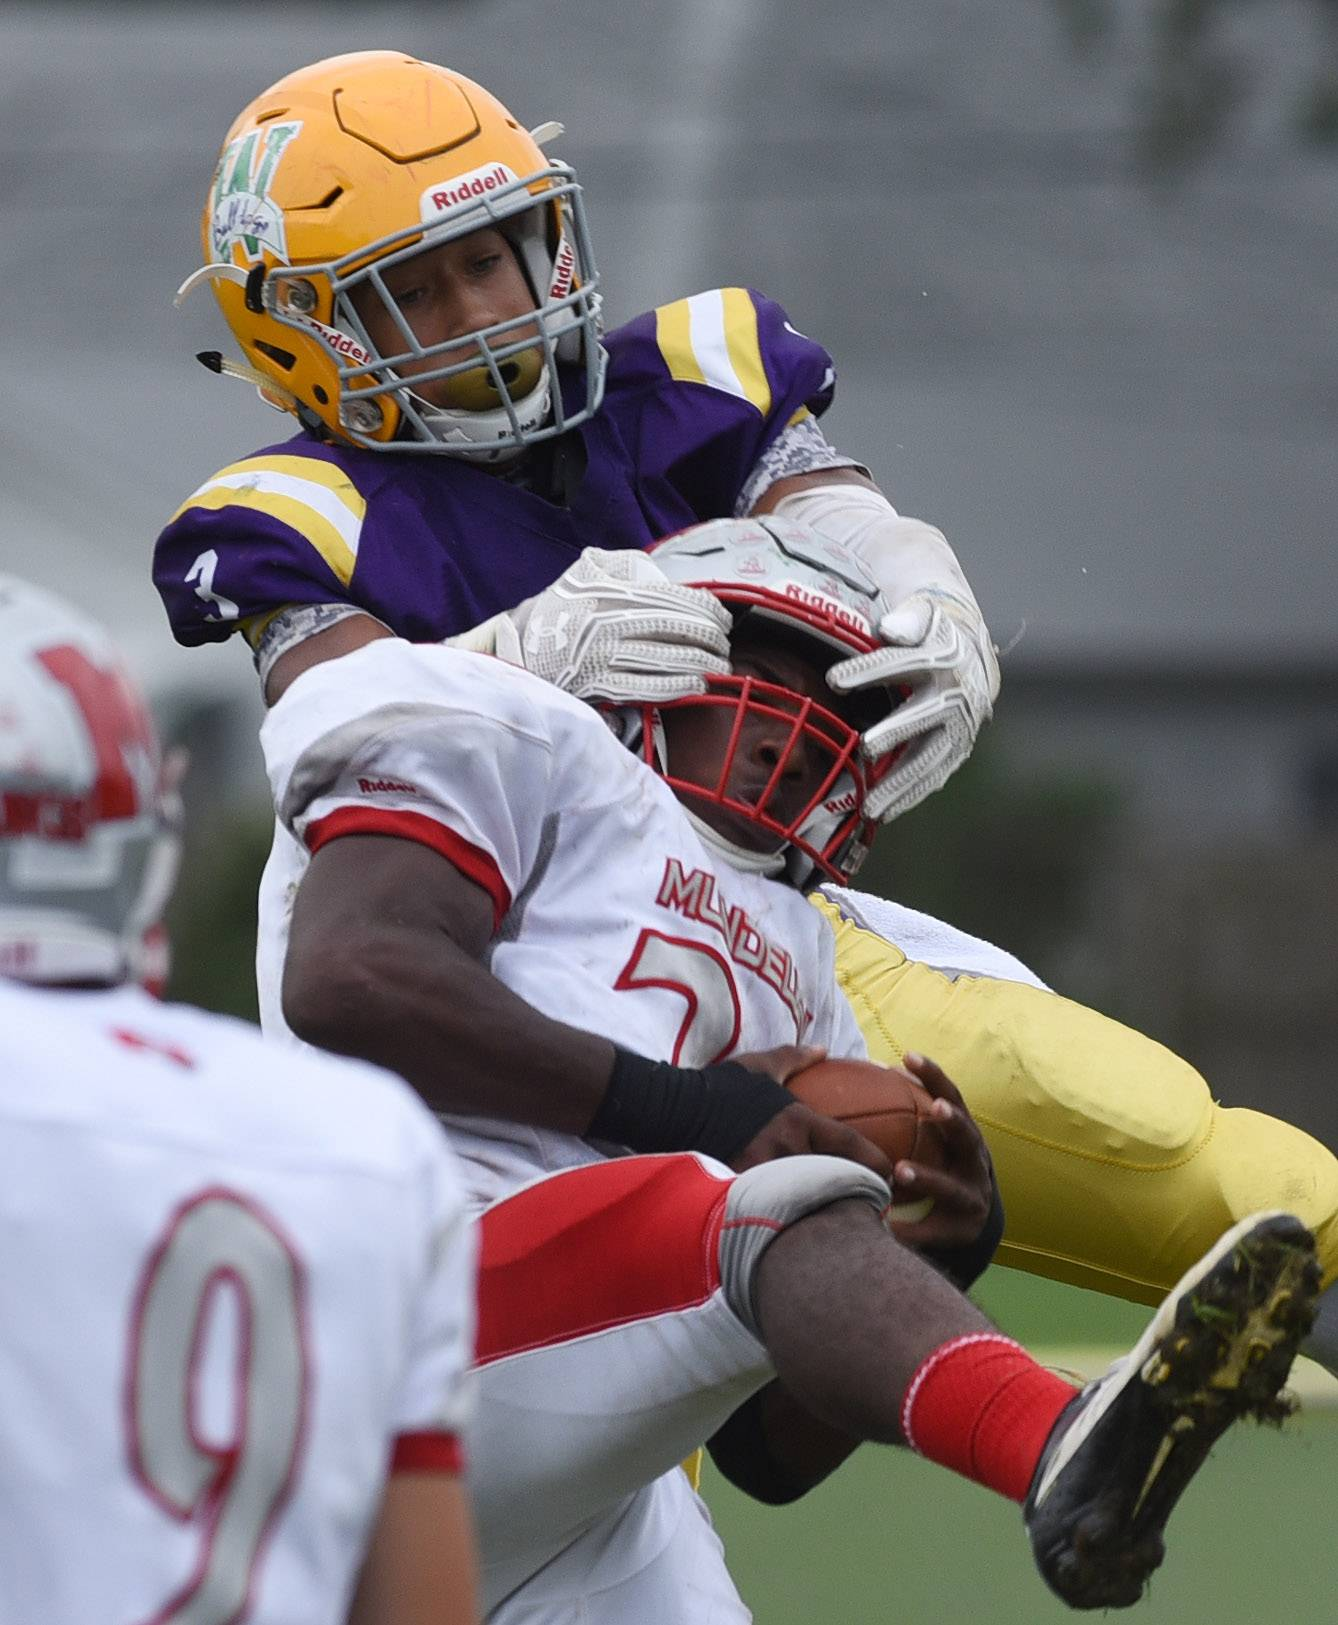 With Woolford bearing down, it's a Mundelein victory